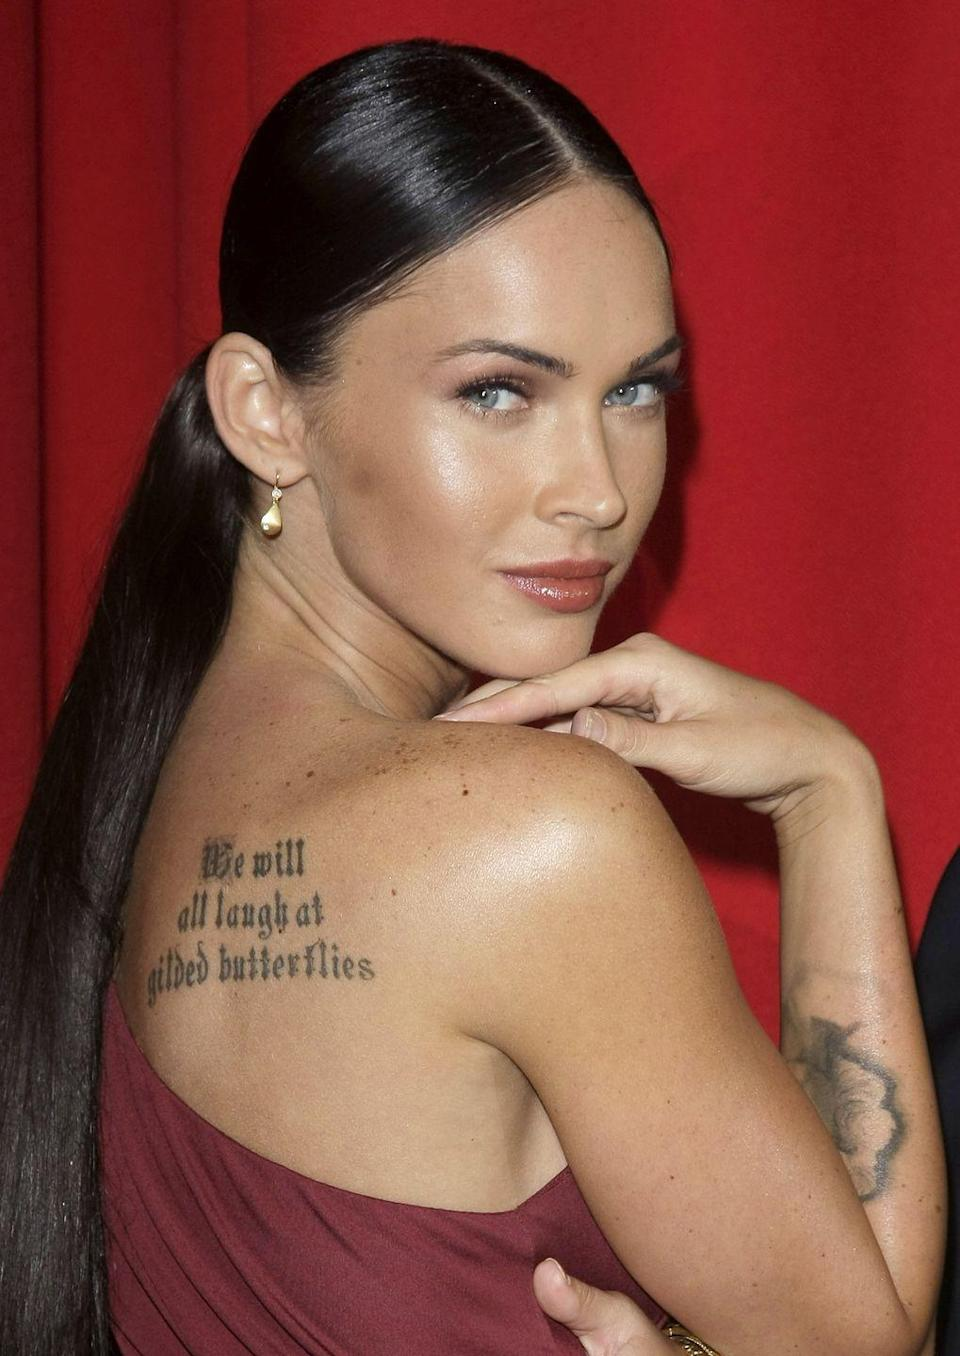 """<p>Megan Fox's love for Marilyn Monroe runs deeps—but not deep enough to keep her tattoo of the blonde bombshell on her forearm. <em><a href=""""https://www.marieclaire.co.uk/news/celebrity-news/megan-fox-removes-negative-marilyn-monroe-tattoo-164144"""" rel=""""nofollow noopener"""" target=""""_blank"""" data-ylk=""""slk:Marie Claire"""" class=""""link rapid-noclick-resp"""">Marie Claire</a></em> reports that the actress first got the tat because Marilyn was one of the first people she saw on television and that Megan """"always empathized with her."""" But later, the <em>Jennifer's Body</em> star realized Marilyn's life wasn't maybe wasn't one she wanted to emulate. </p><p>""""She was a negative person, she was disturbed, bipolar,"""" she said. """"I do not want to attract this kind of negative energy in my life.""""</p>"""